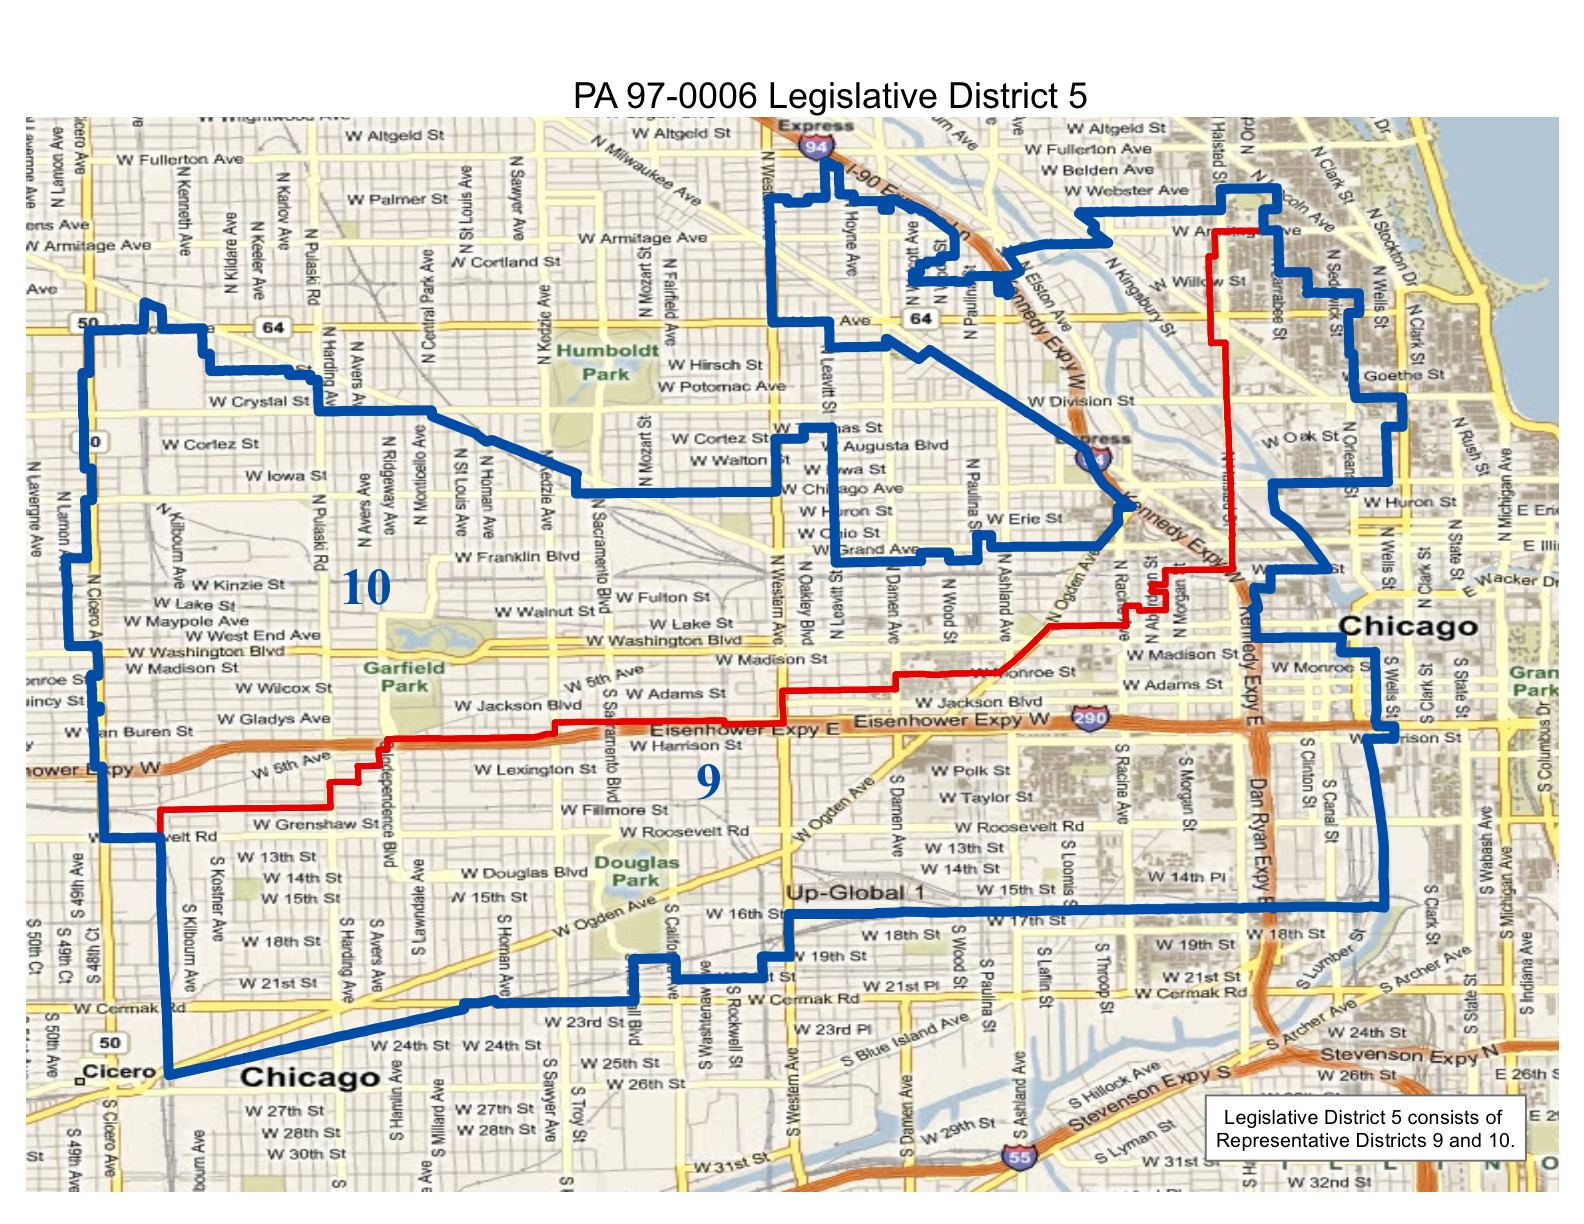 map of realigned illinois legislative district 5 including representative districts 9 and 10